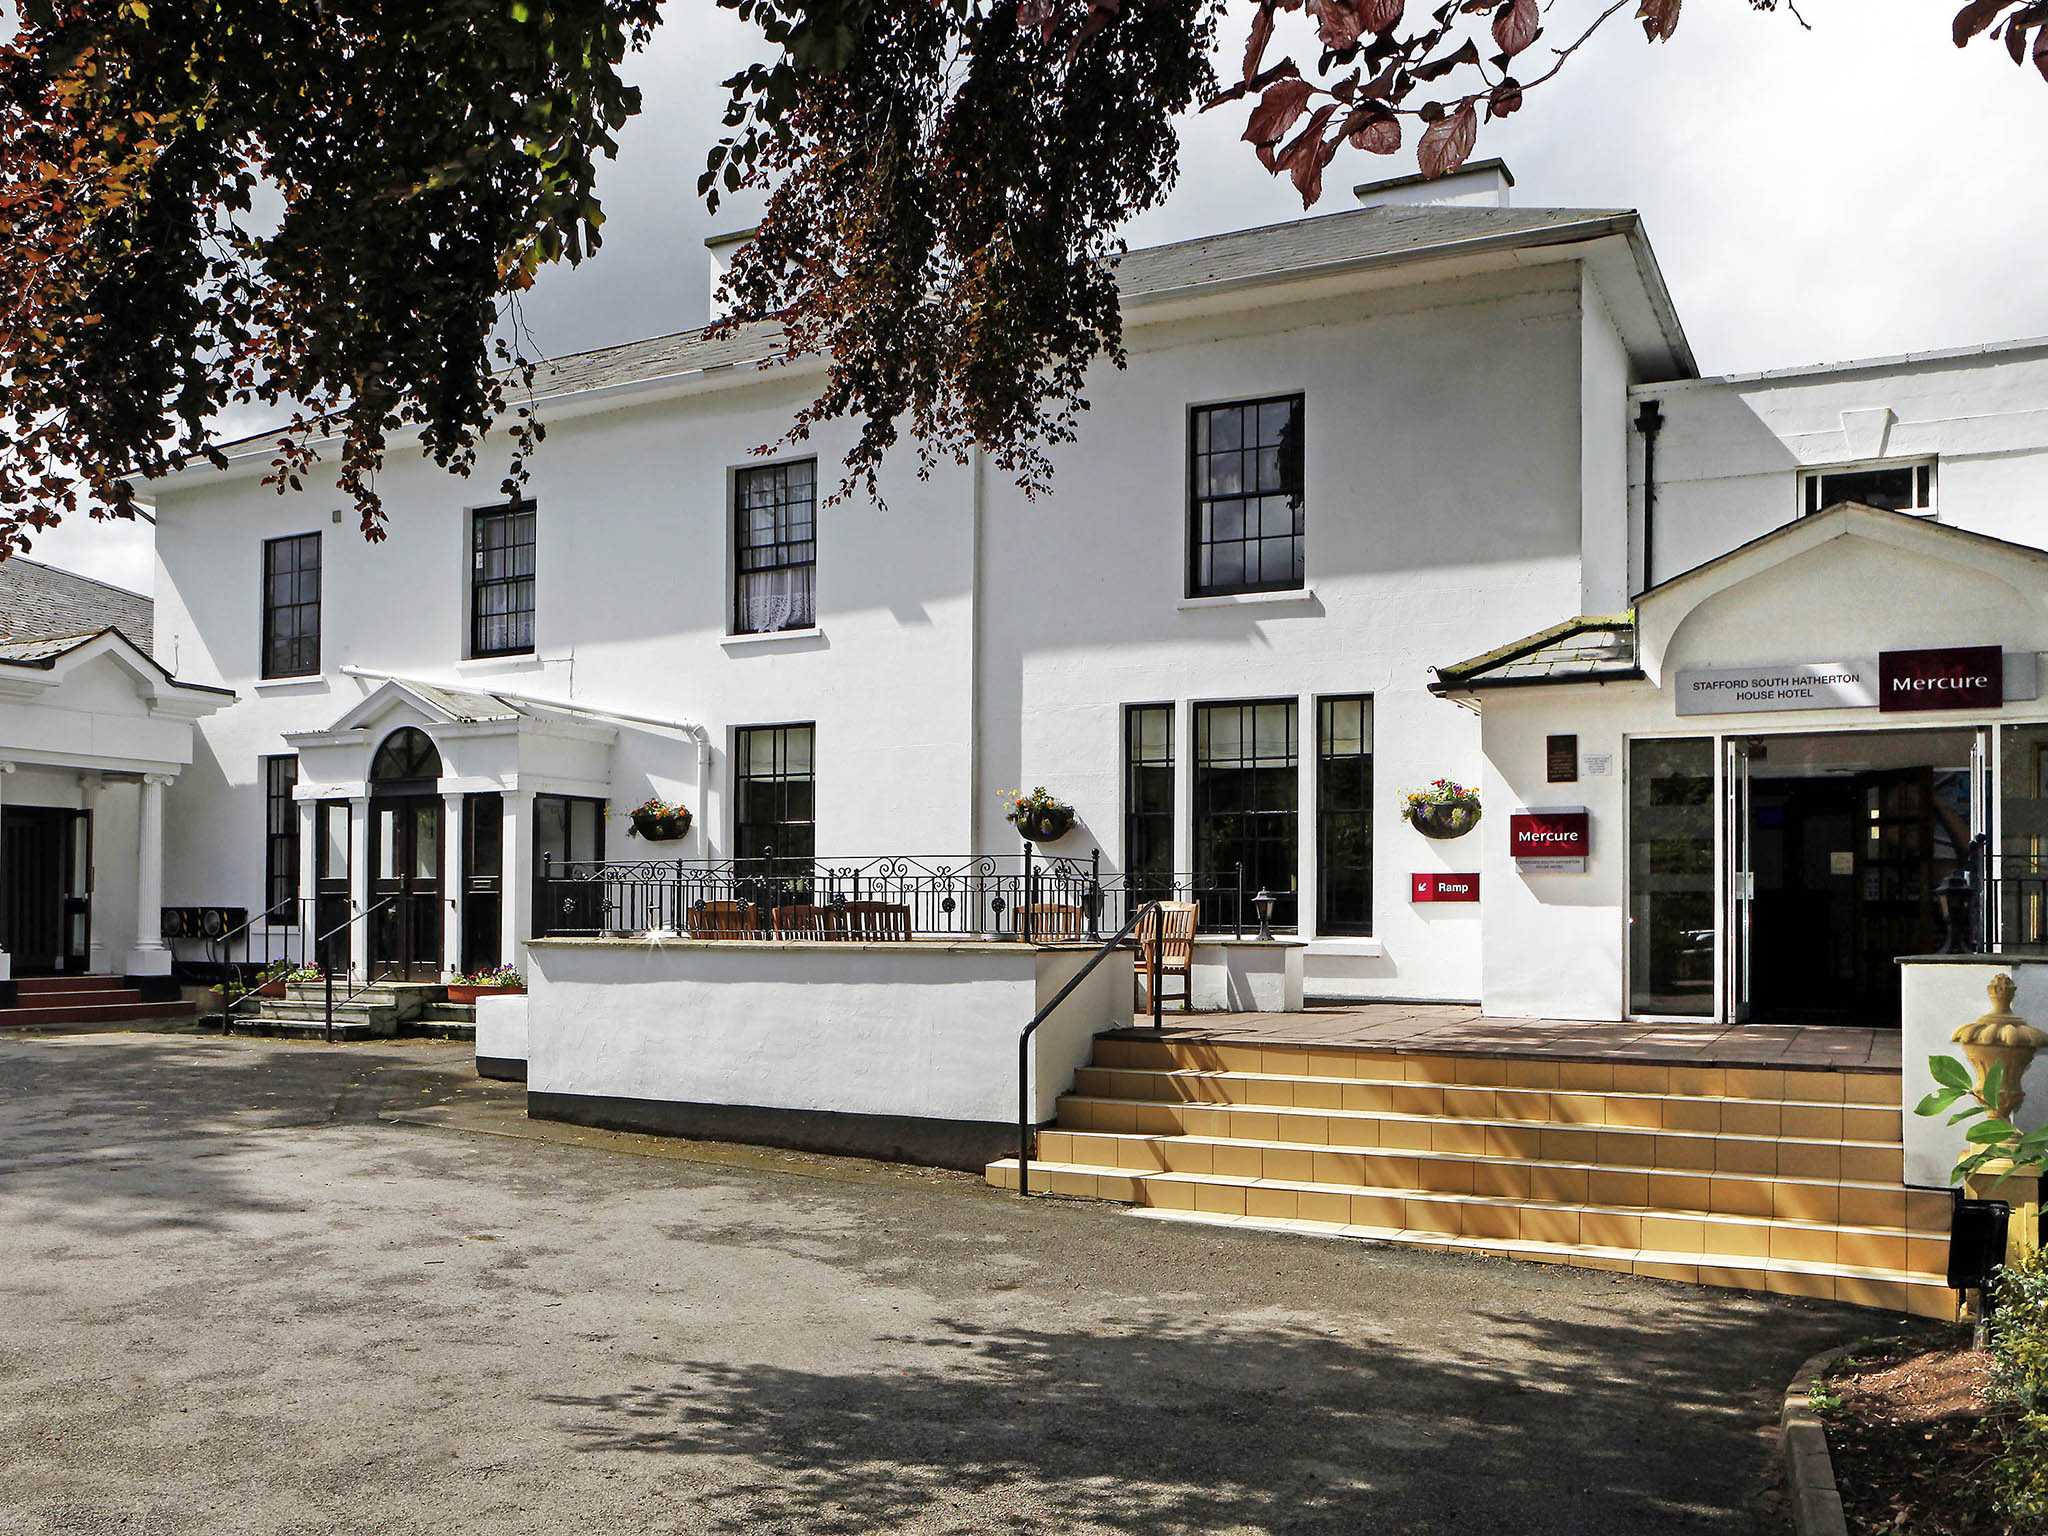 Hotel Mercure Stafford South Hatherton House